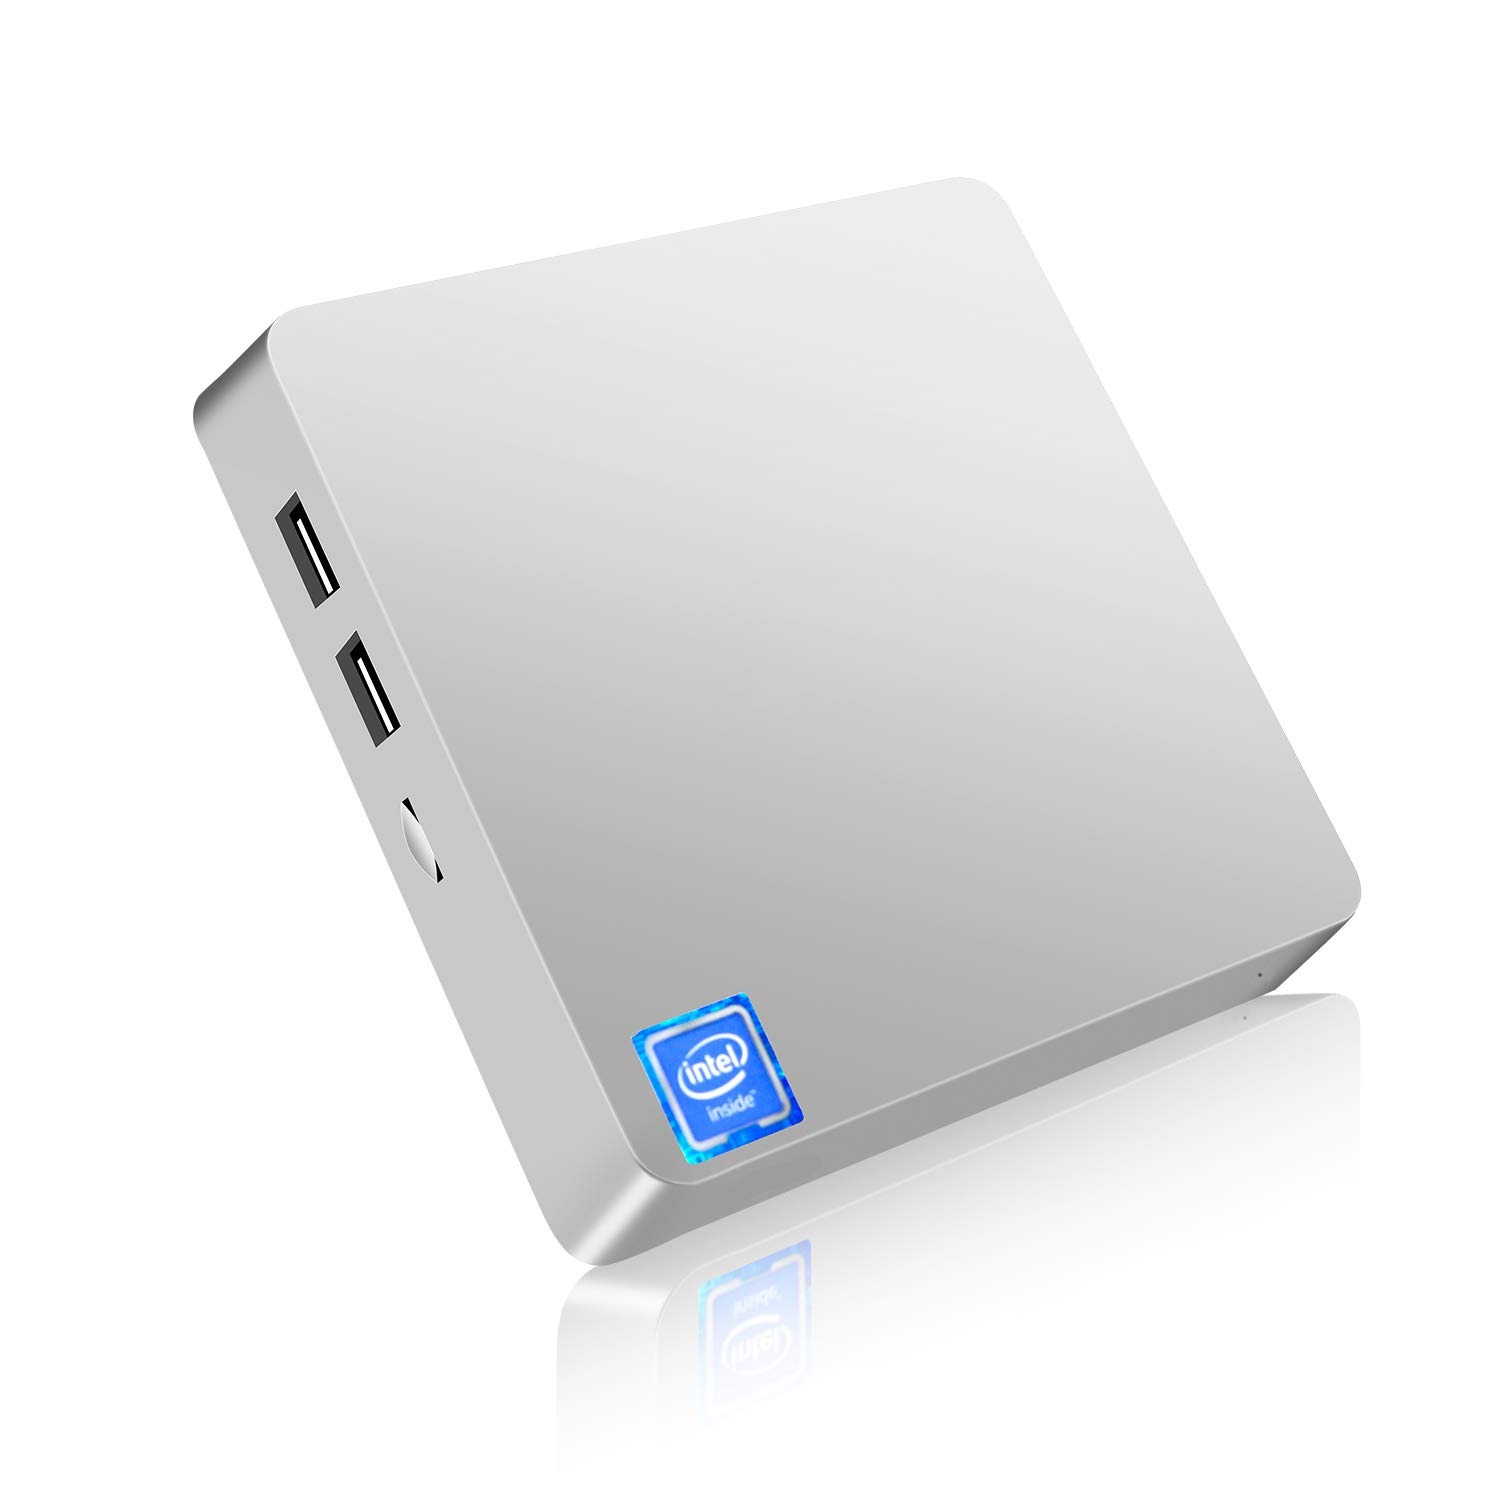 Mini PC,T11 Windows 10 Pro(64-bit) Intel x5-Z8350 Fanless Mini Computer with HDMI/VGA Port,4K HD,4GB/64GB eMMC,2.4/5G WiFi,Gigabit Ethernet,Support 2.5-Inch SATA SSD/HDD,Auto Power On